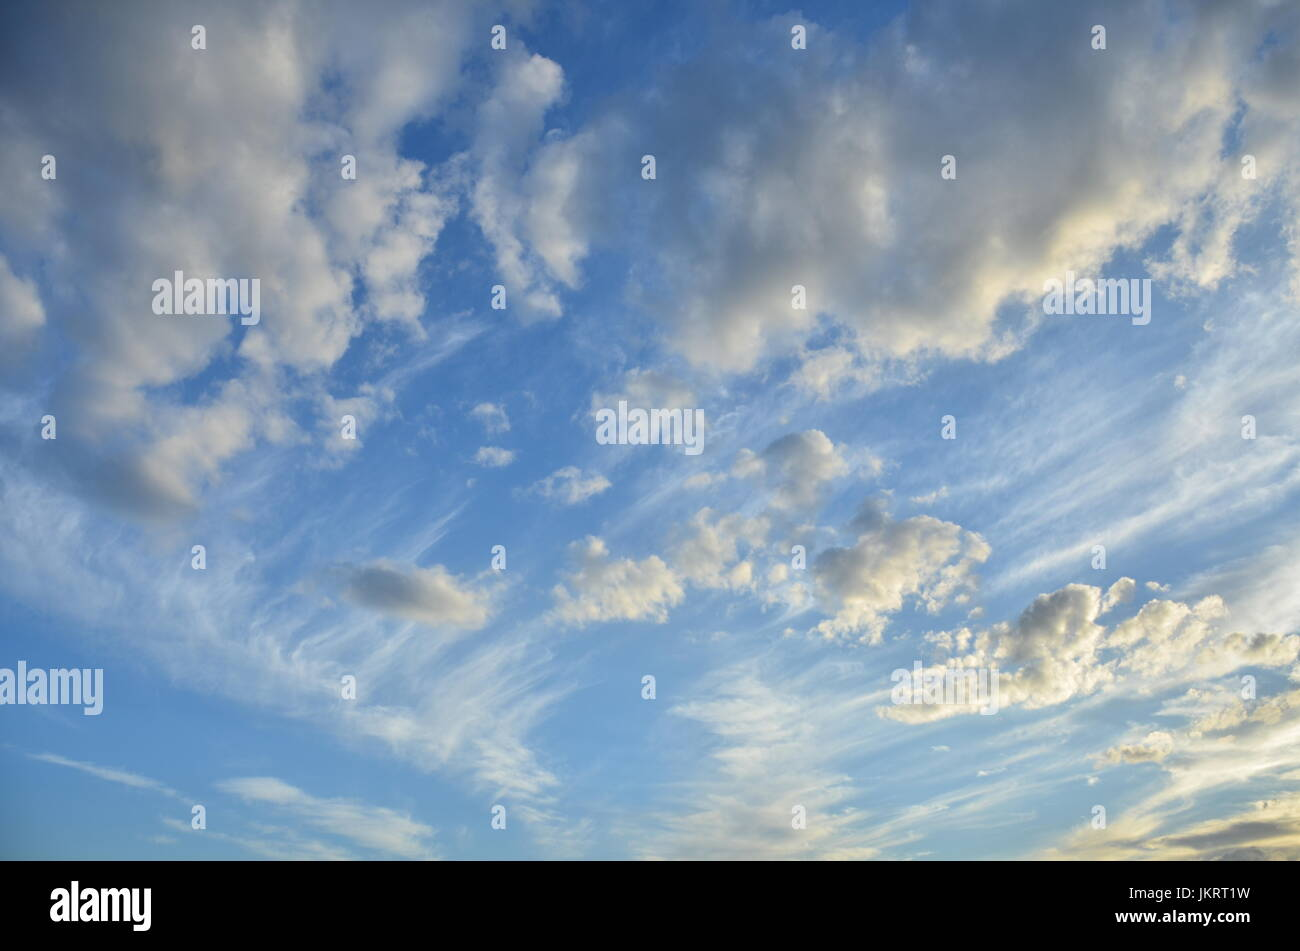 clouds at dusk - Stock Image